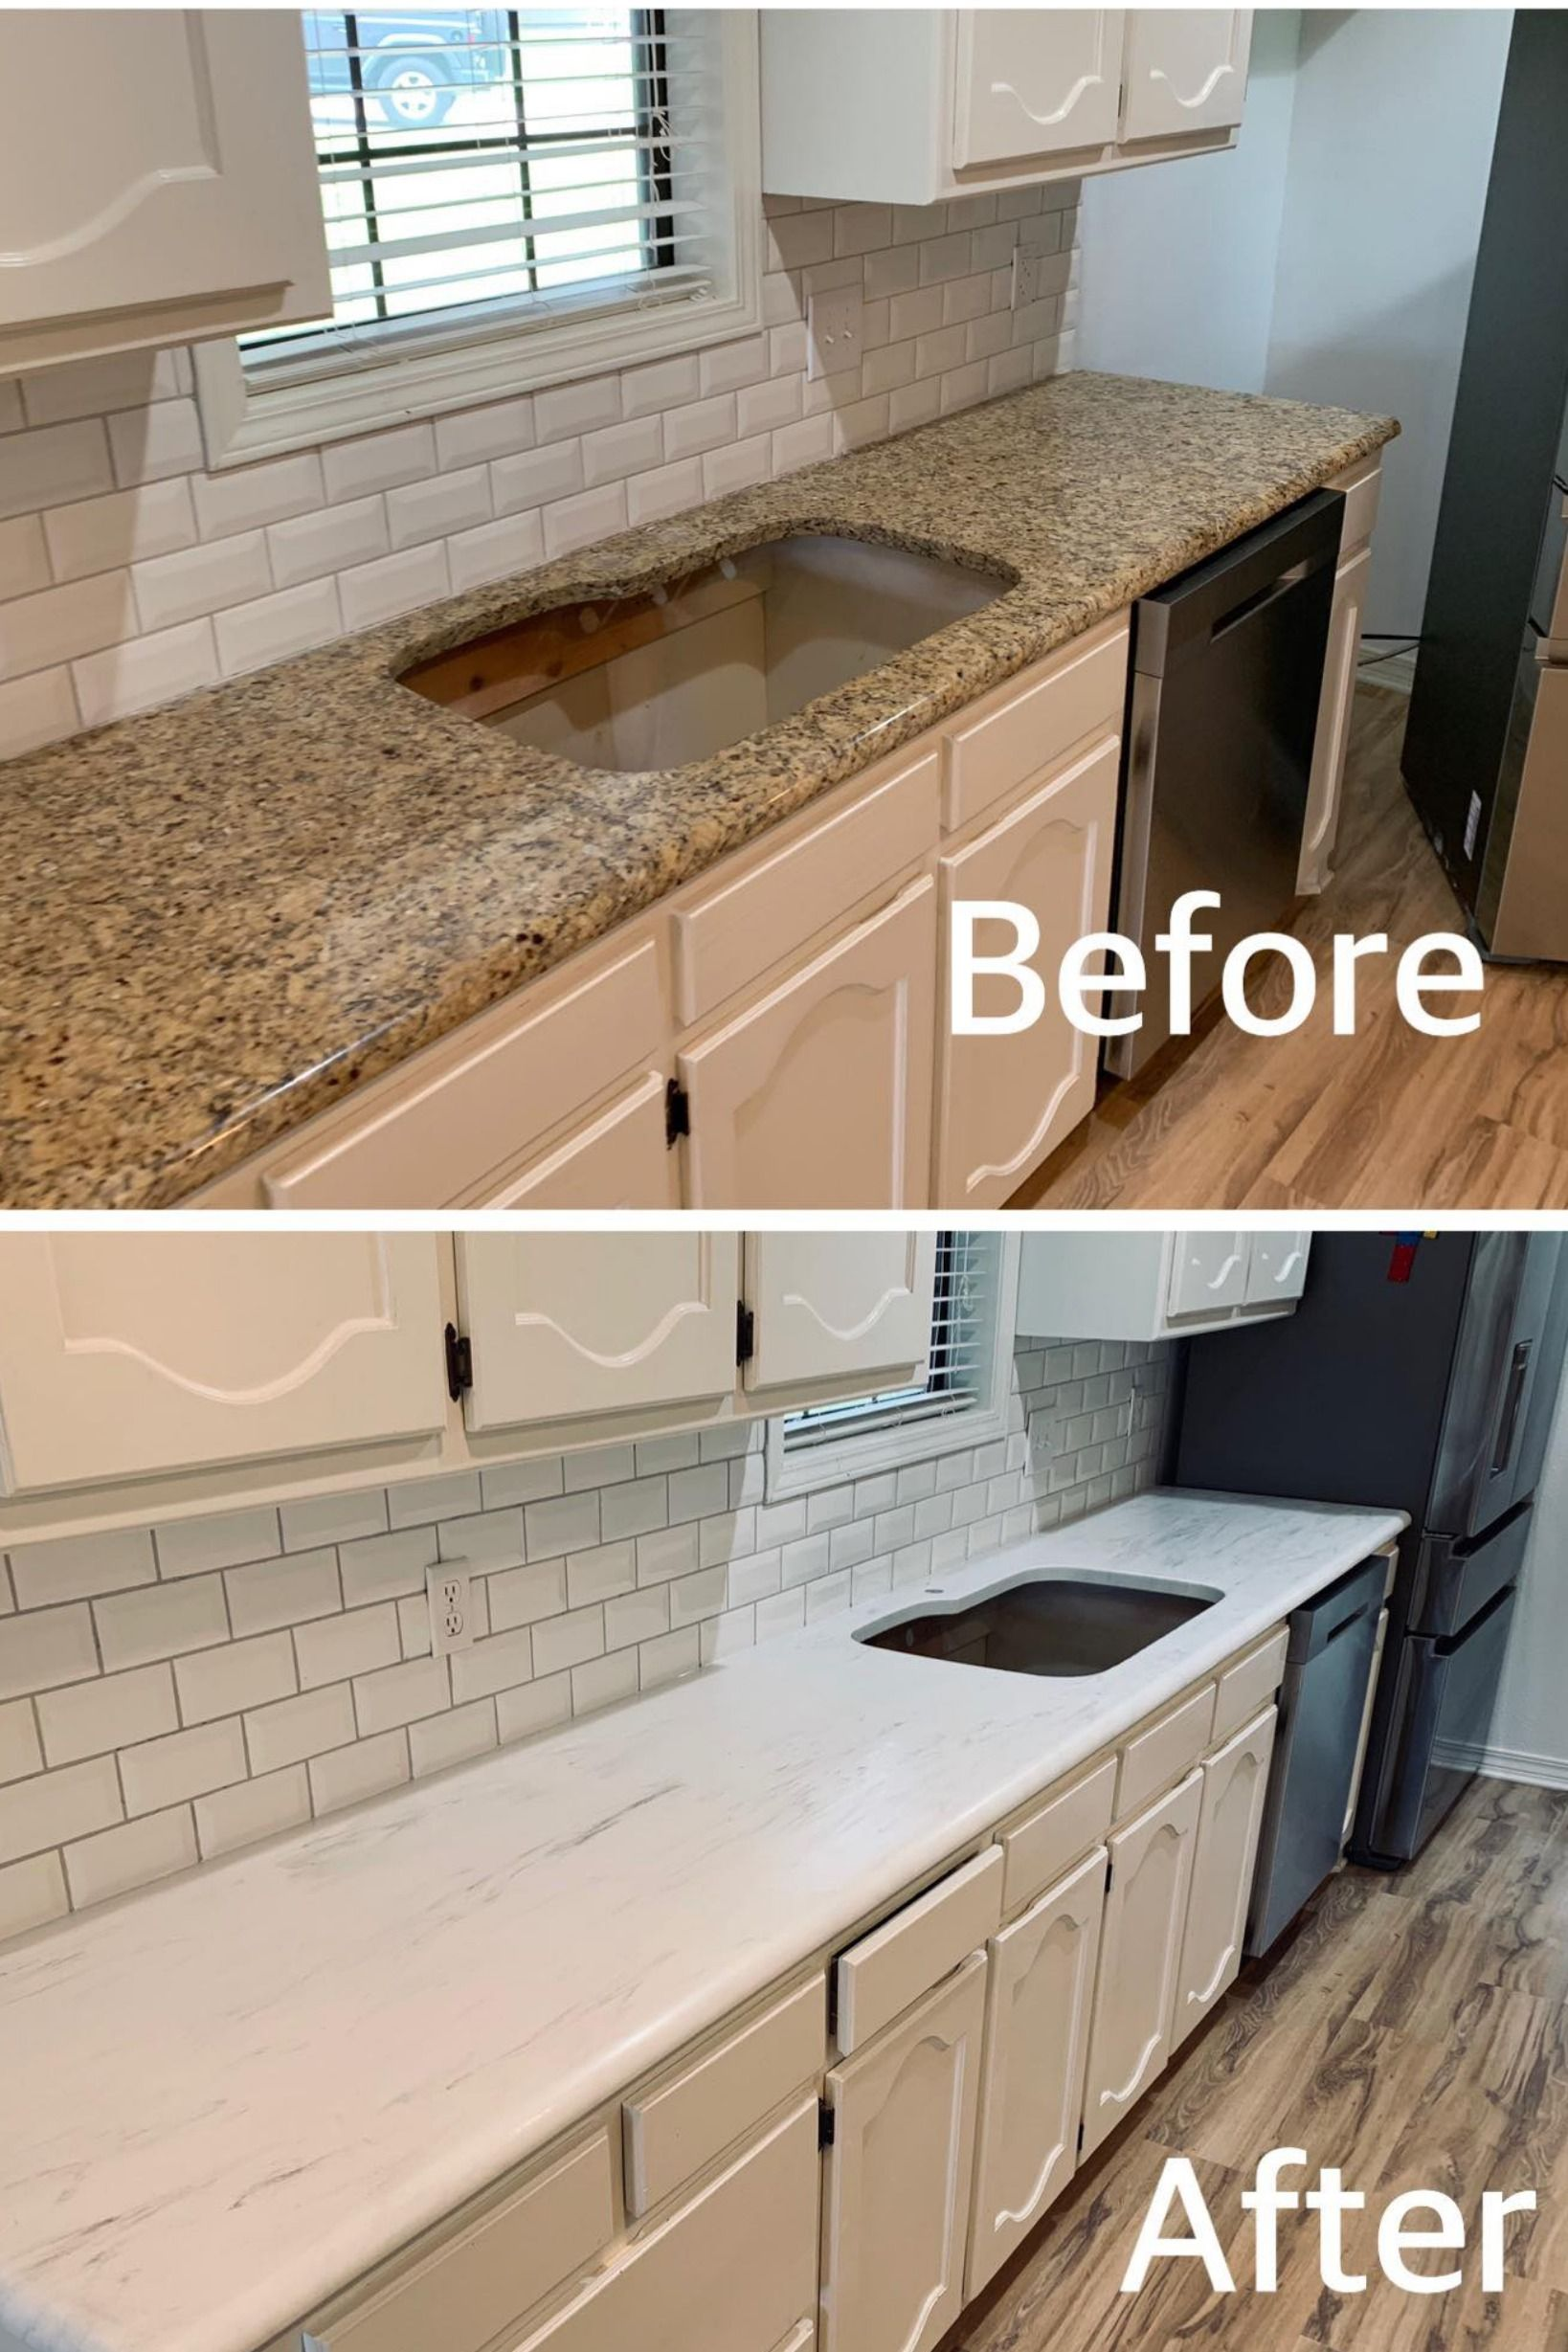 Epoxy Countertop Before And After Diy Kitchen Countertops Countertop Makeover Refinish Countertops